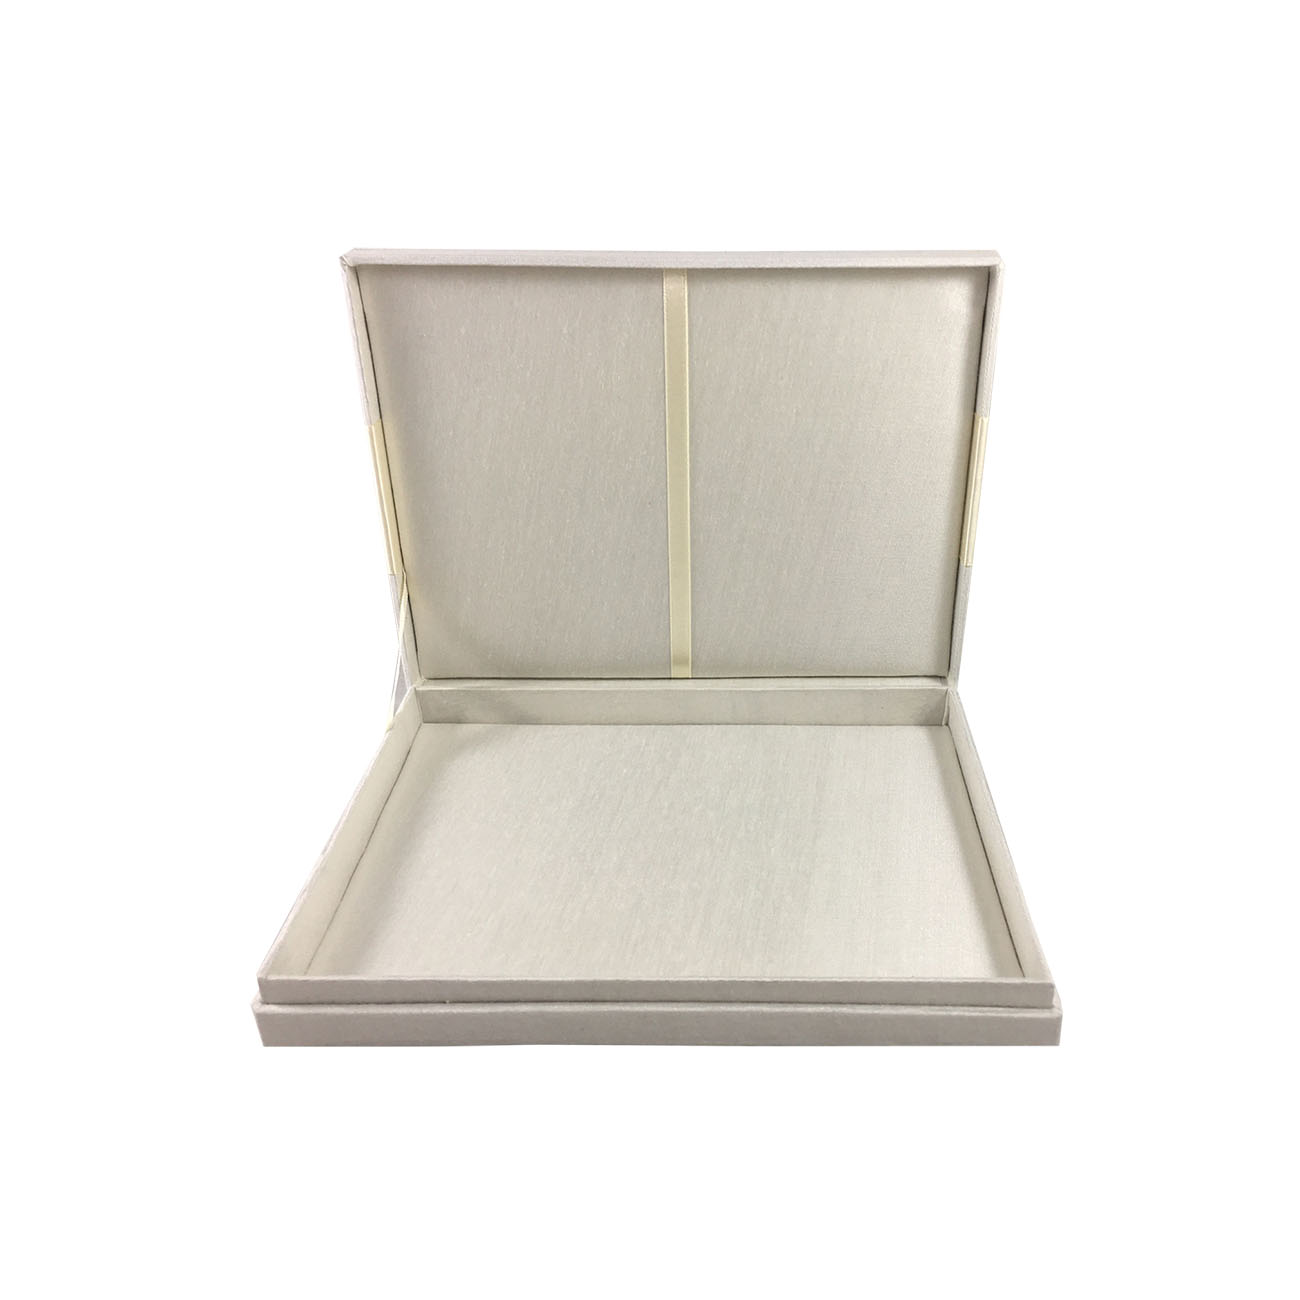 Ivory Boxed Wedding Invitation With Hinged Lid & Ribbon For DIY ...